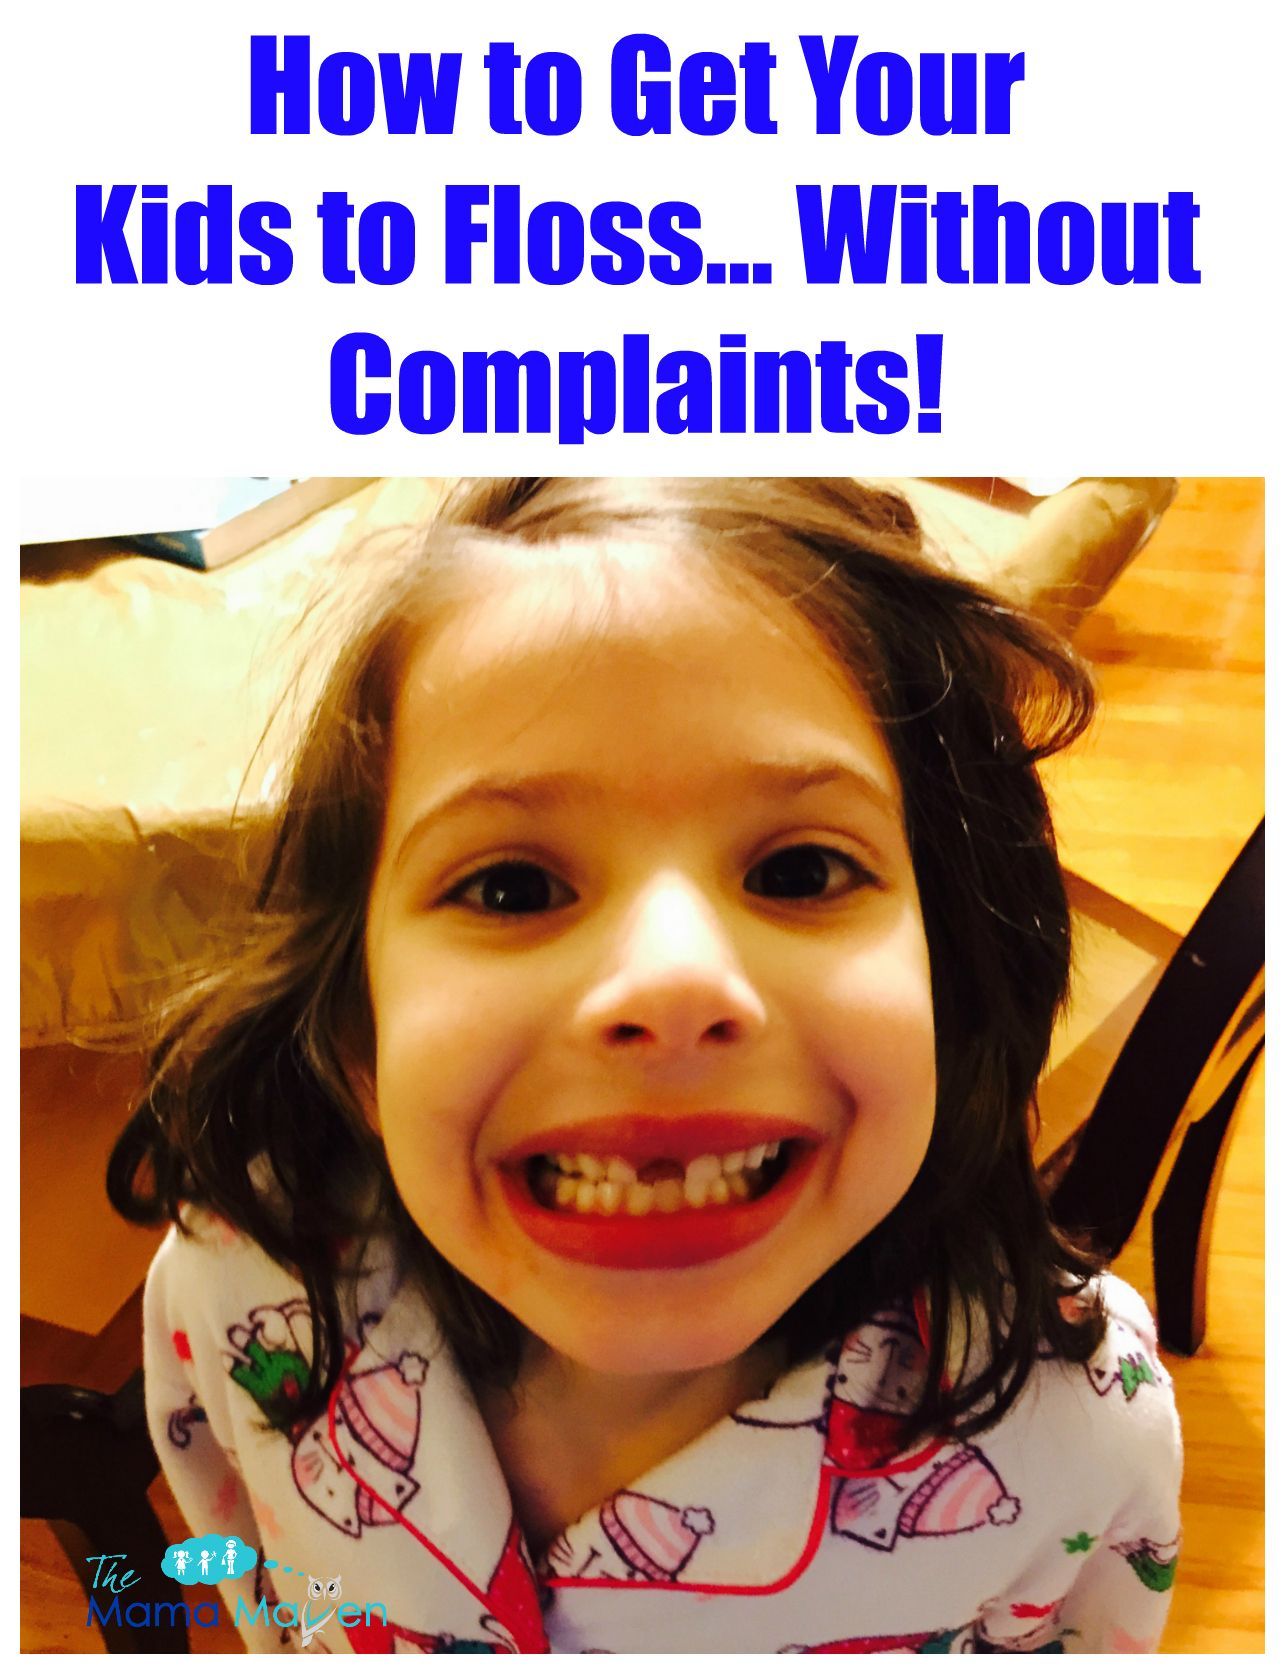 How to get your kids to flosswithout complaints kids